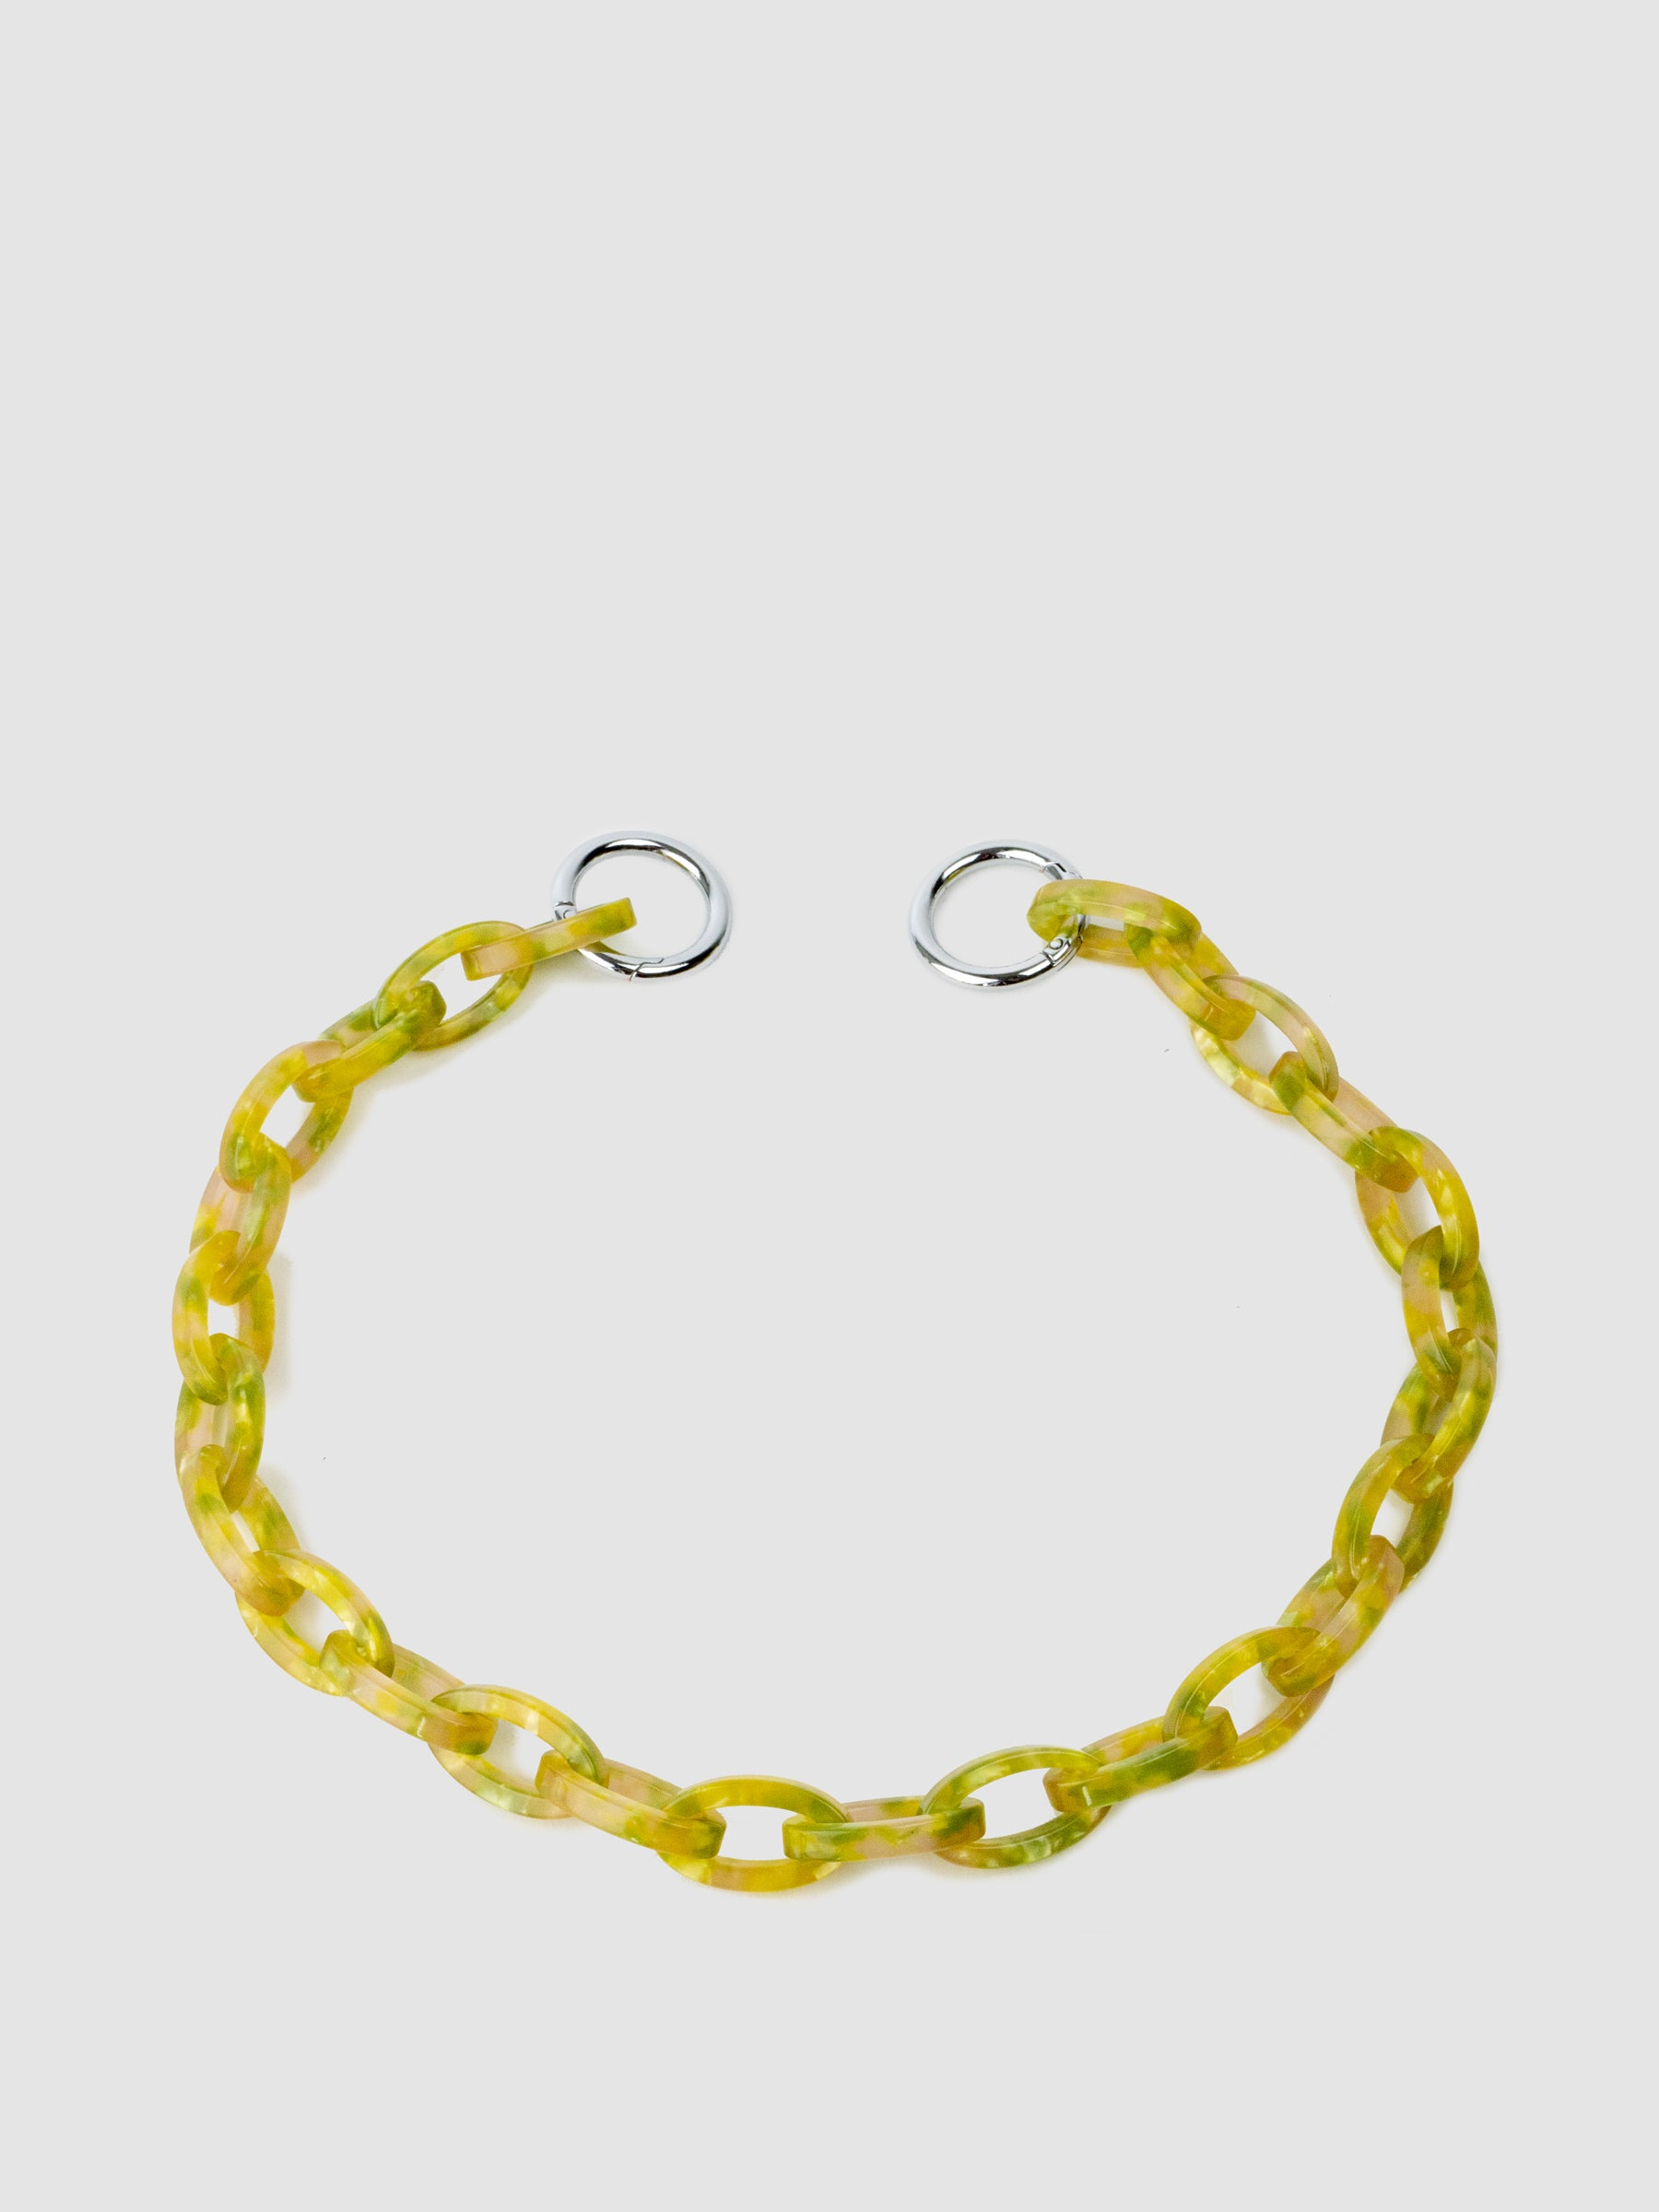 "The SONYA LEE  7 bag chain. Unique acrylic chain in yellow and green. Each chain is 20"" in length and can be used multiple ways. Update your Victoria bag, other bags, or wear as a necklace."